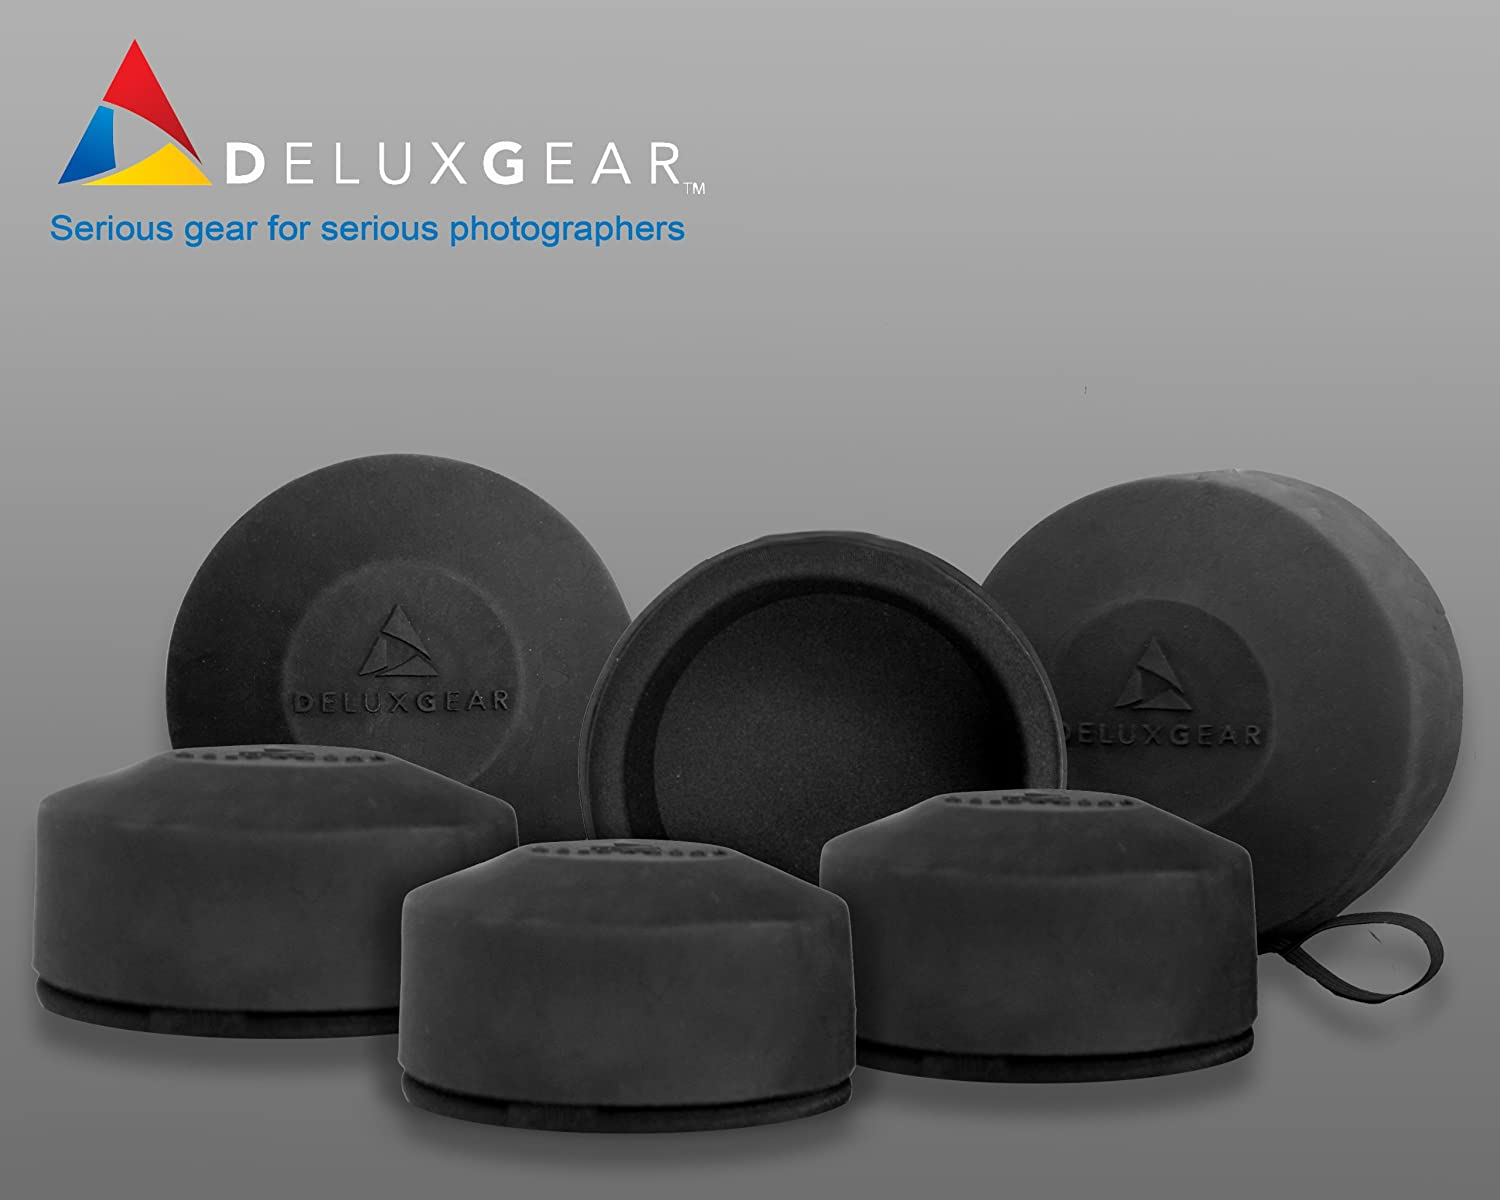 DeluxGear DGLG-LGL Lens Guard for Lenses 3.4-3.9 Inches in Diameter Large